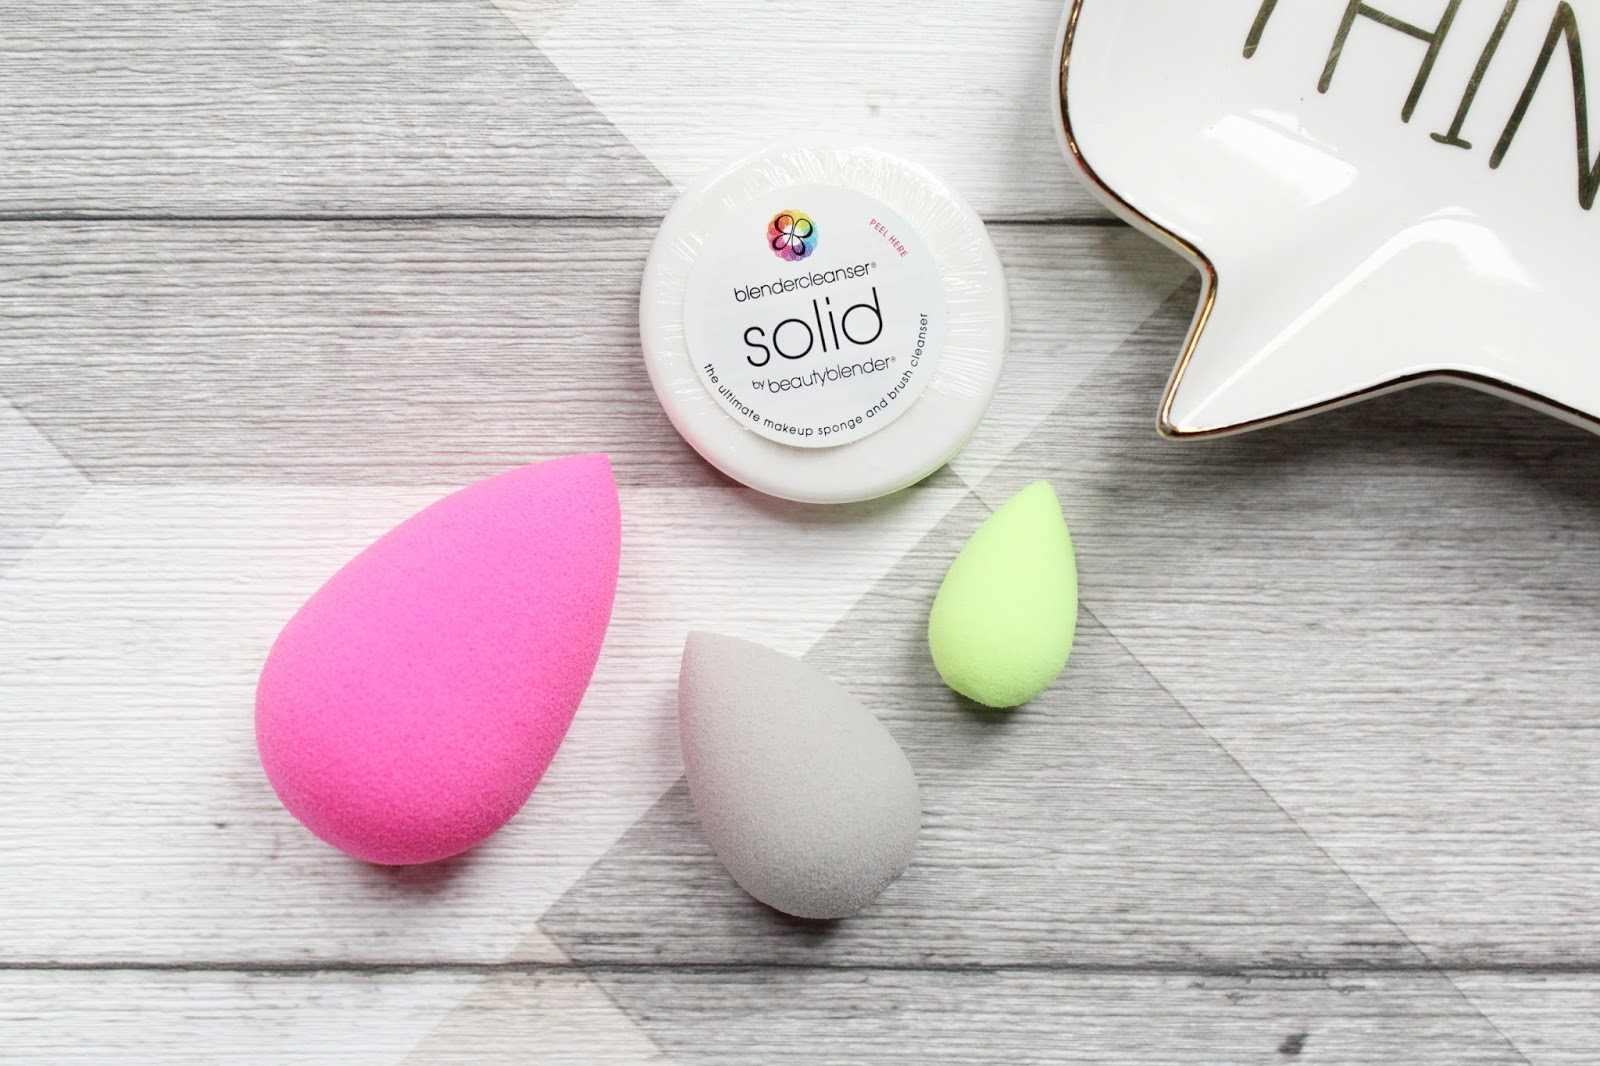 Beauty Blender All About Face Collection